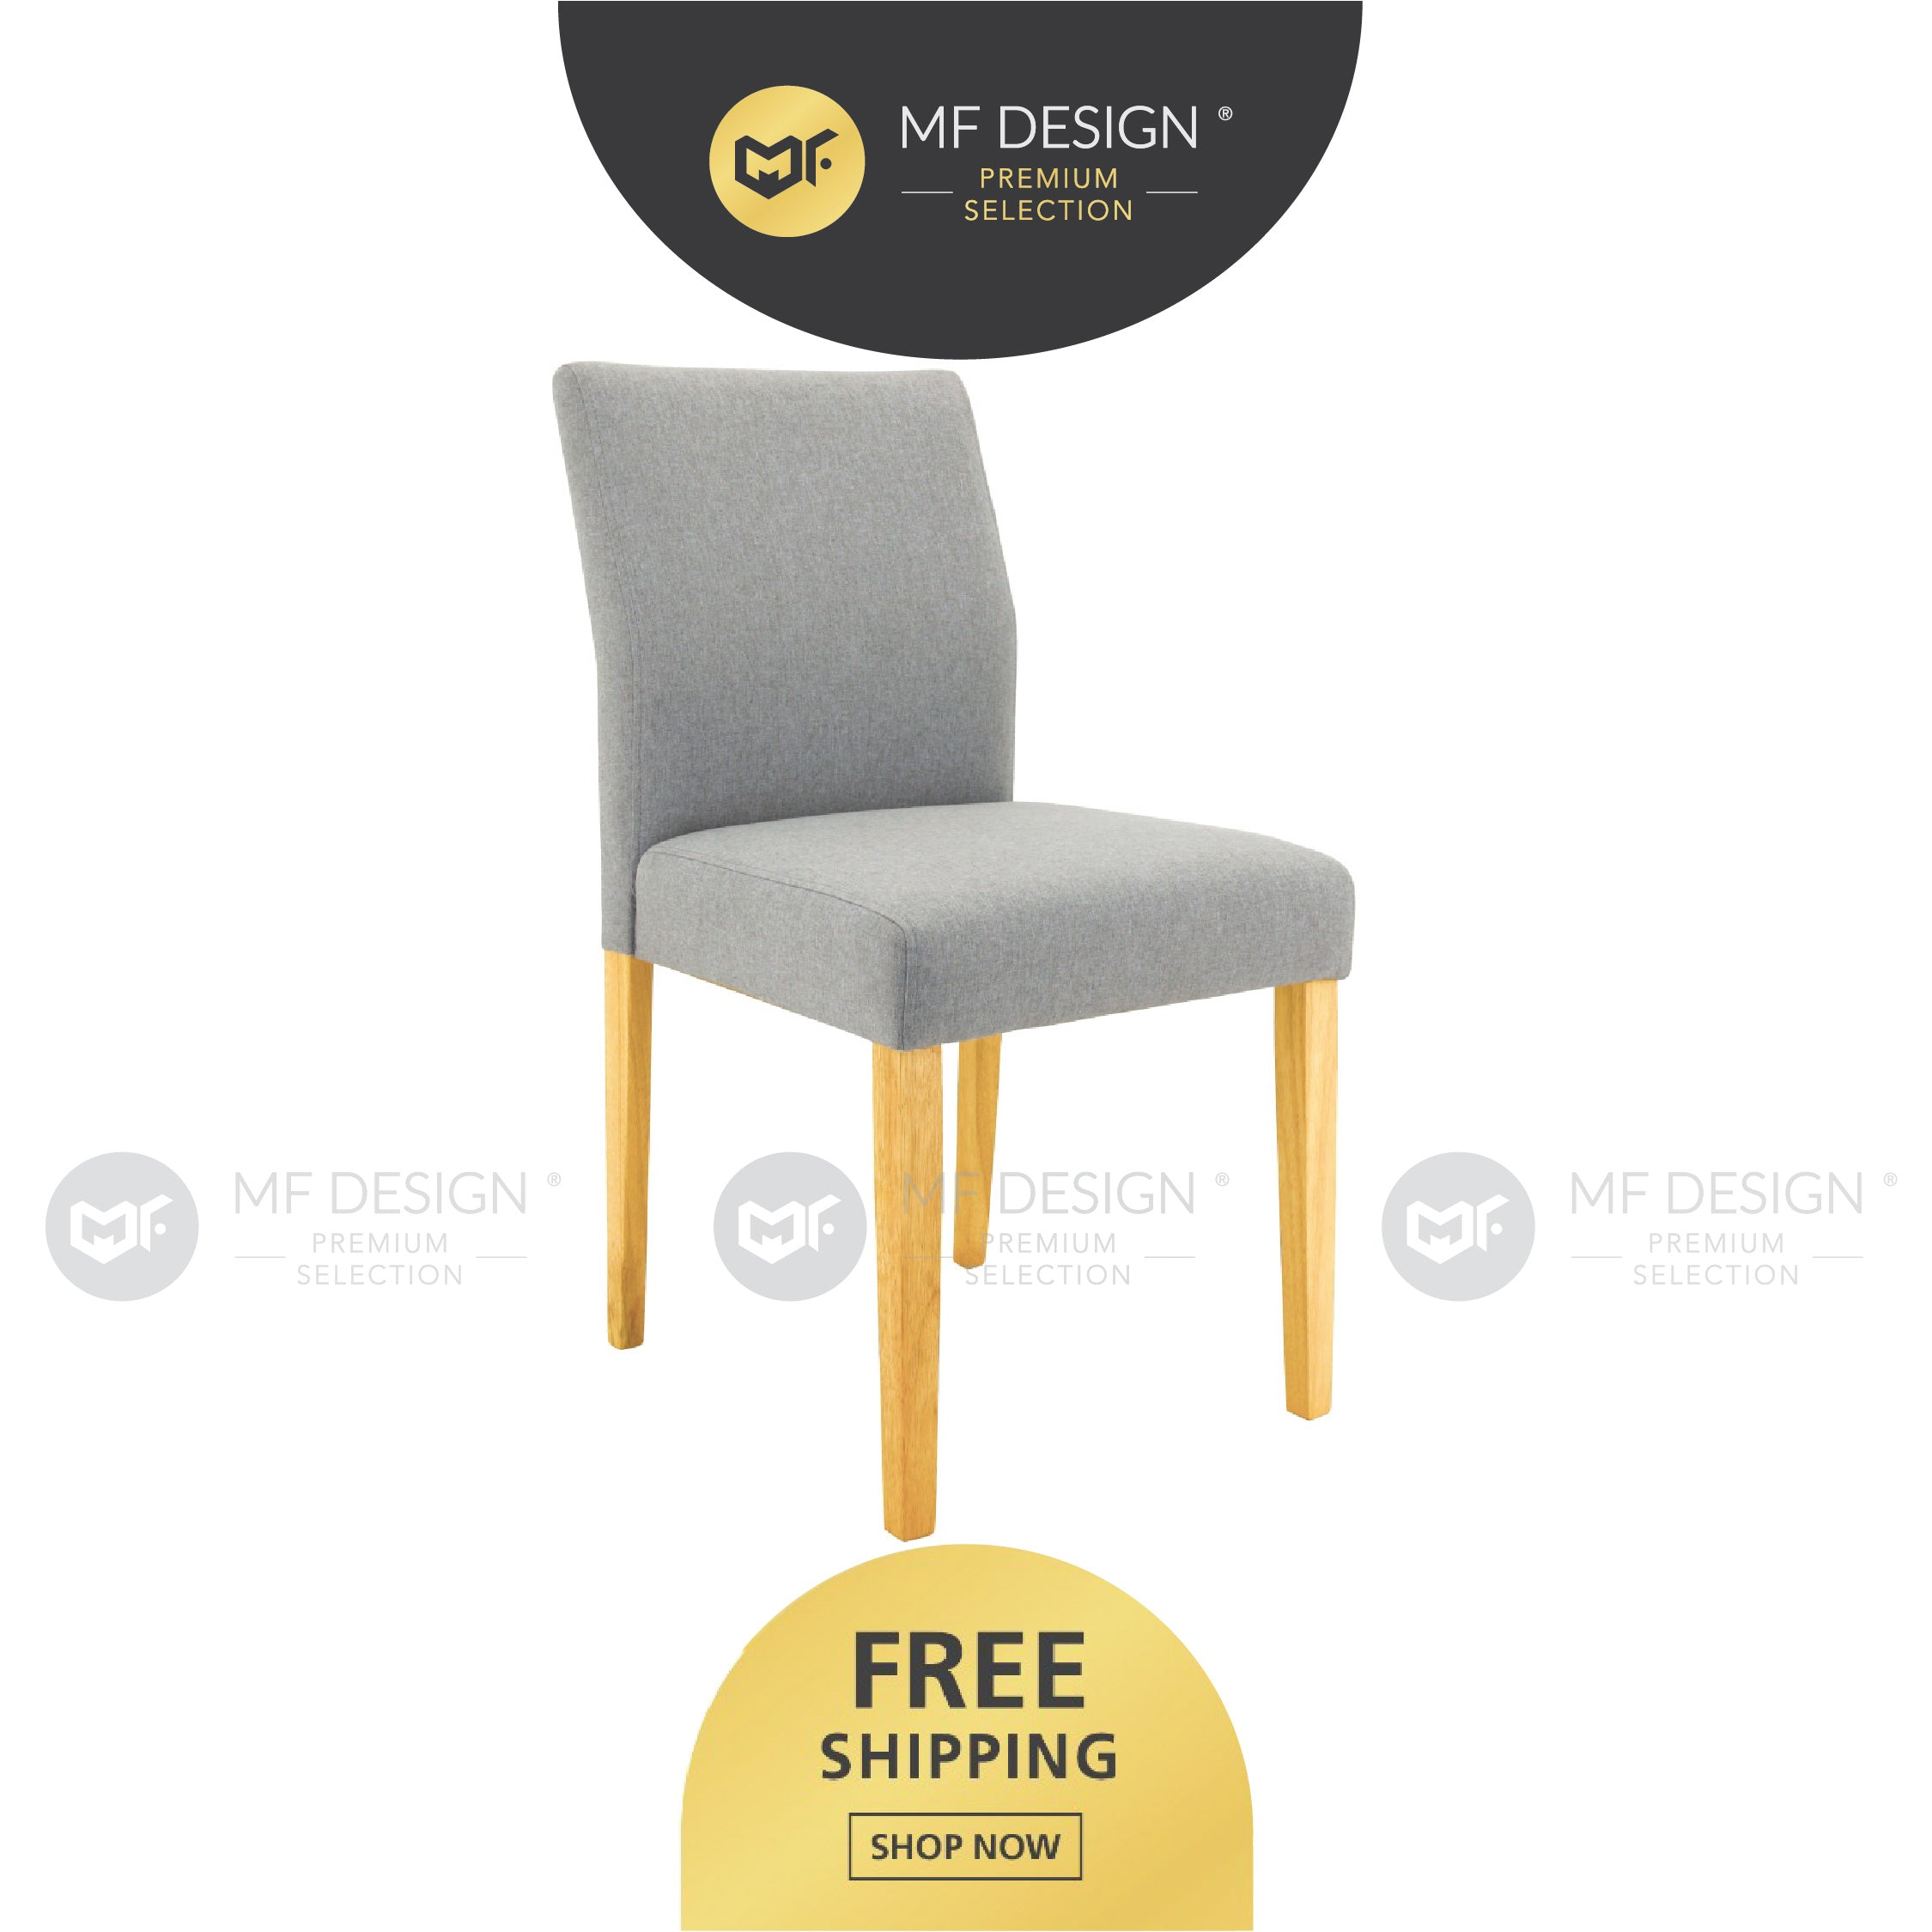 MFD Premium Lance Dining Chair  / kerusi / chair